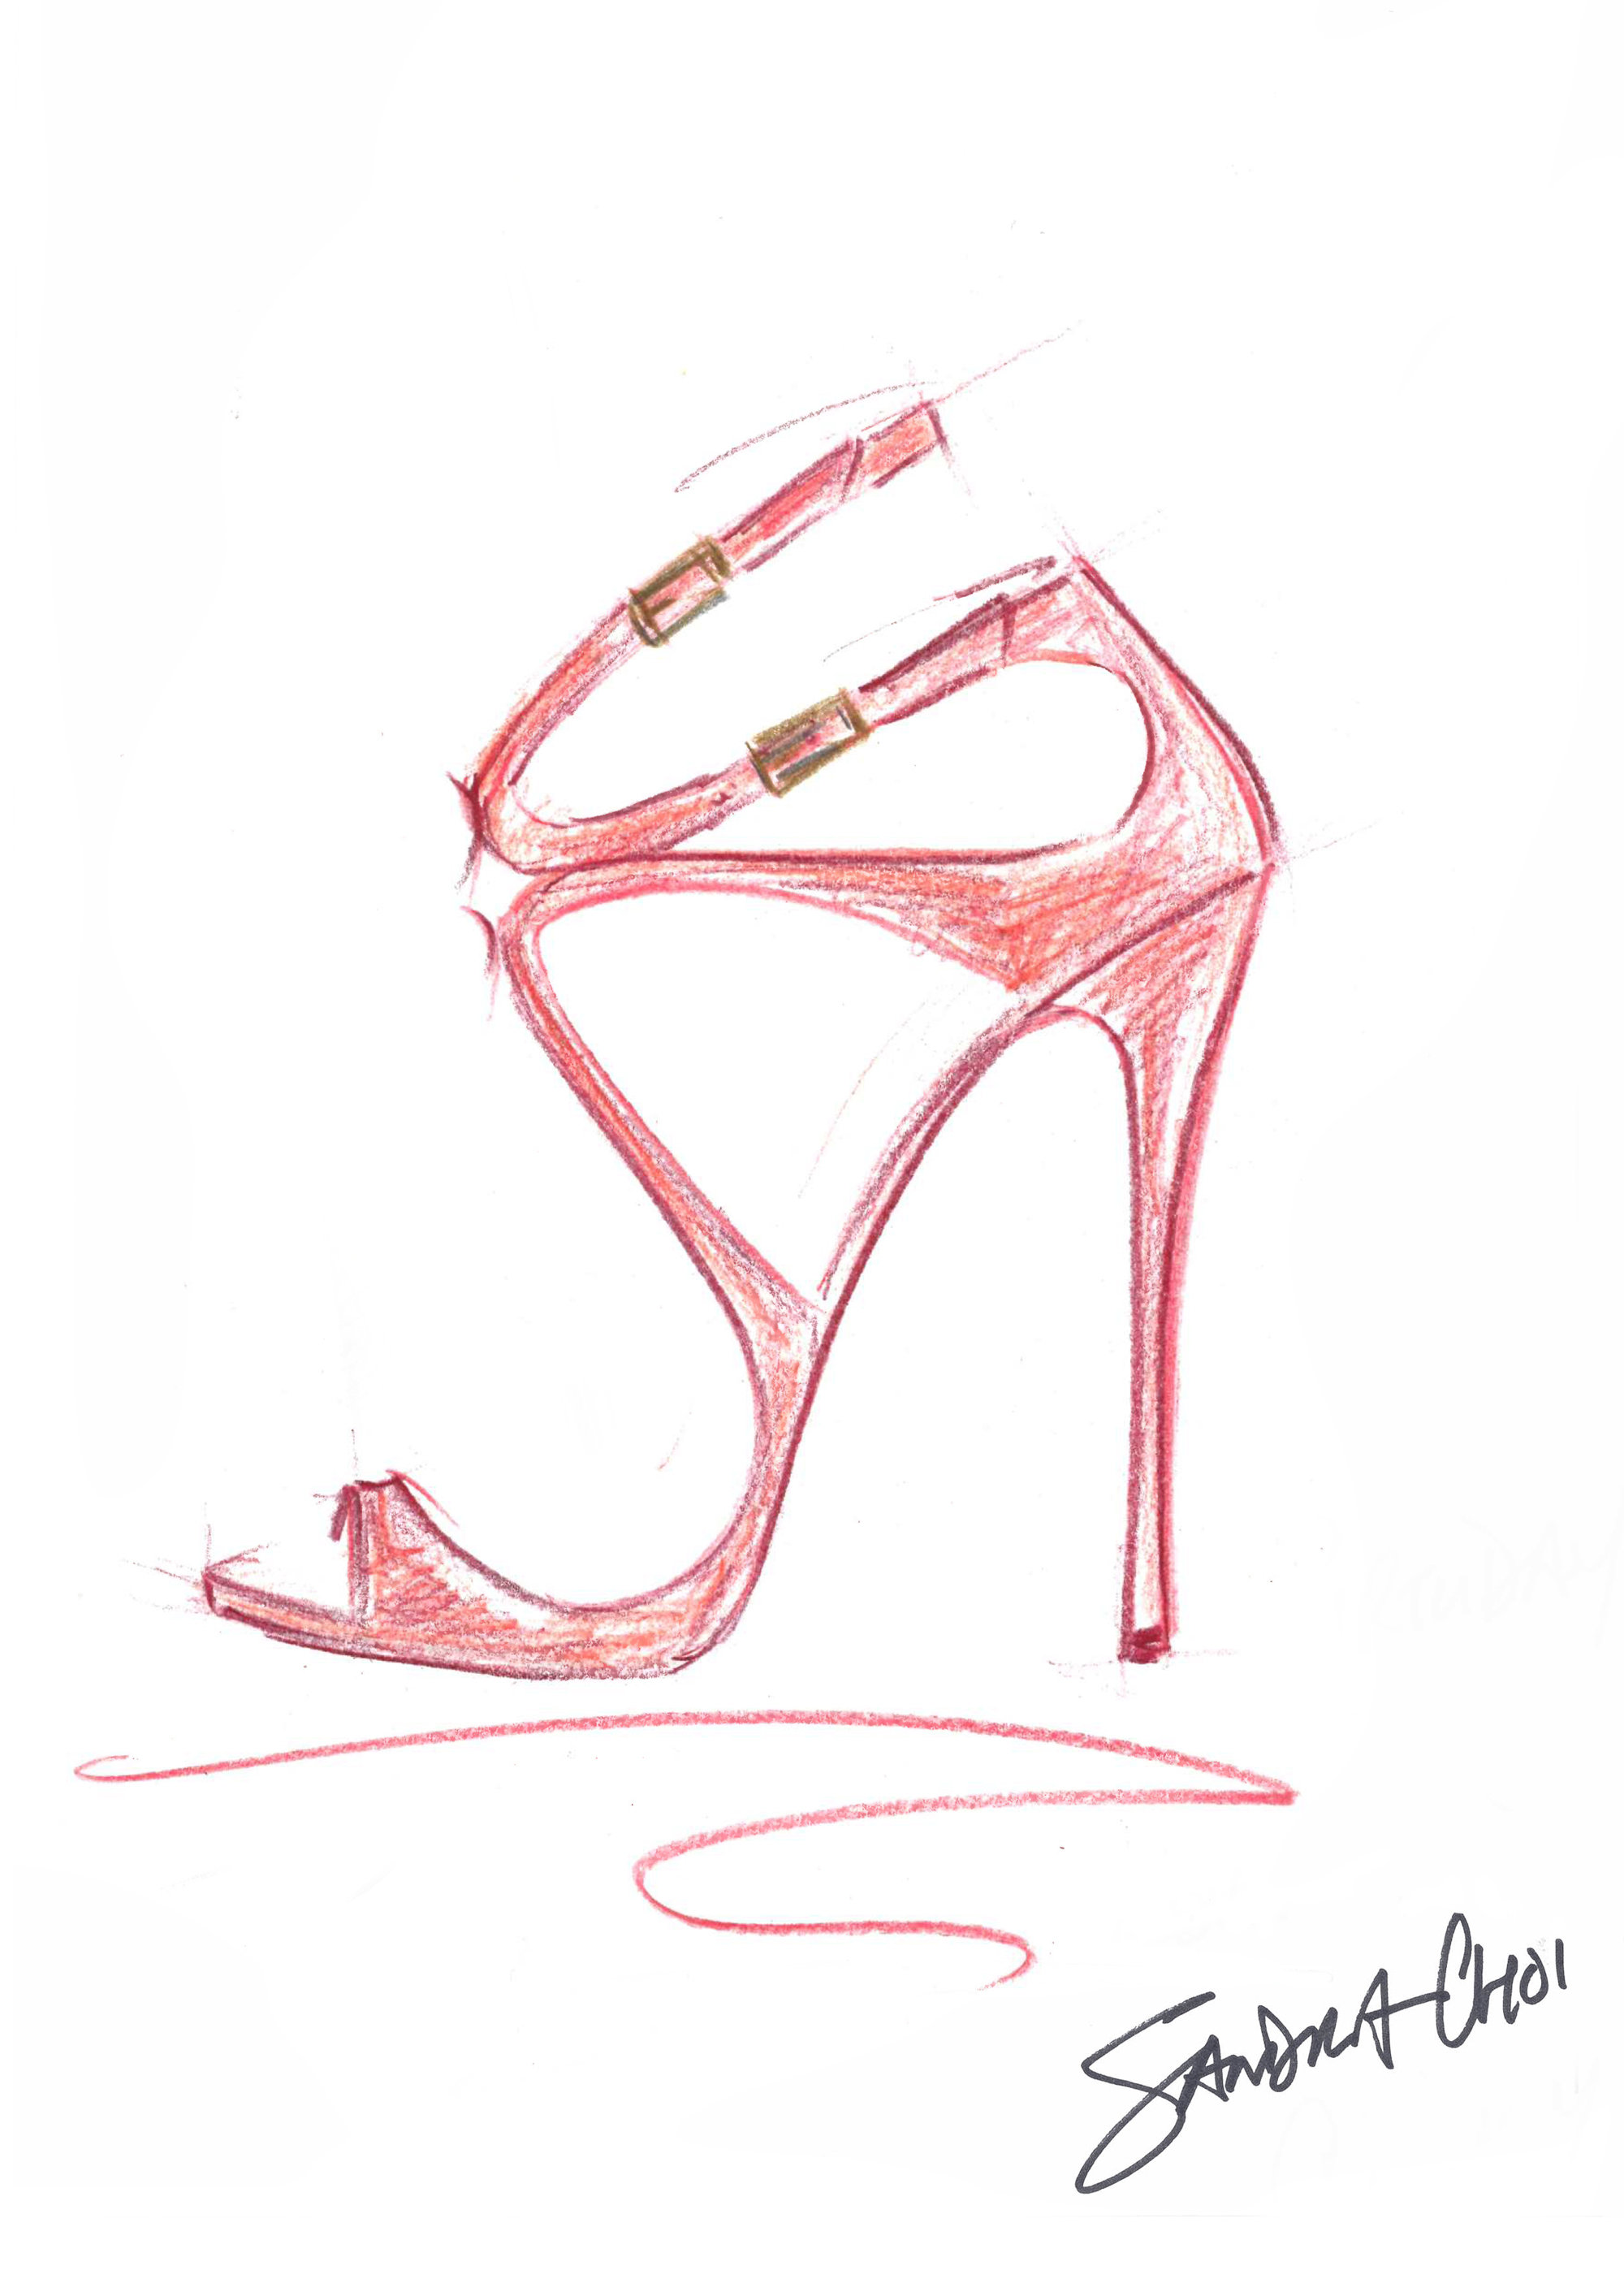 Jimmy Choo Shoe on the Red Carpet - Embed 1